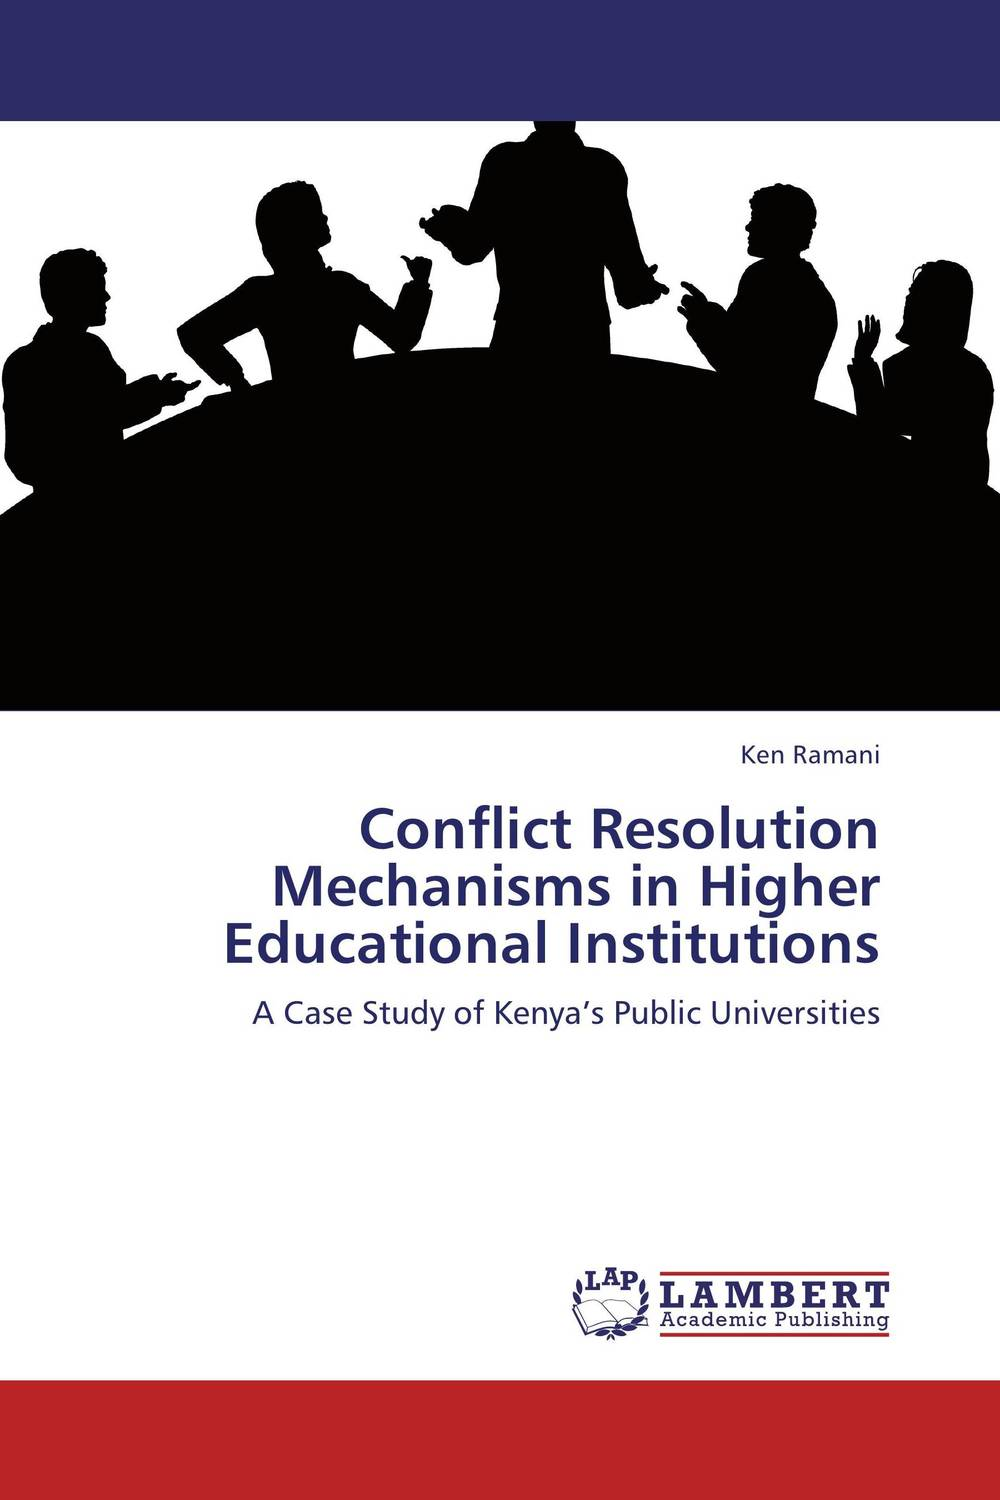 Conflict Resolution Mechanisms in Higher Educational Institutions anatomy of conflict management styles in kenyan public universities